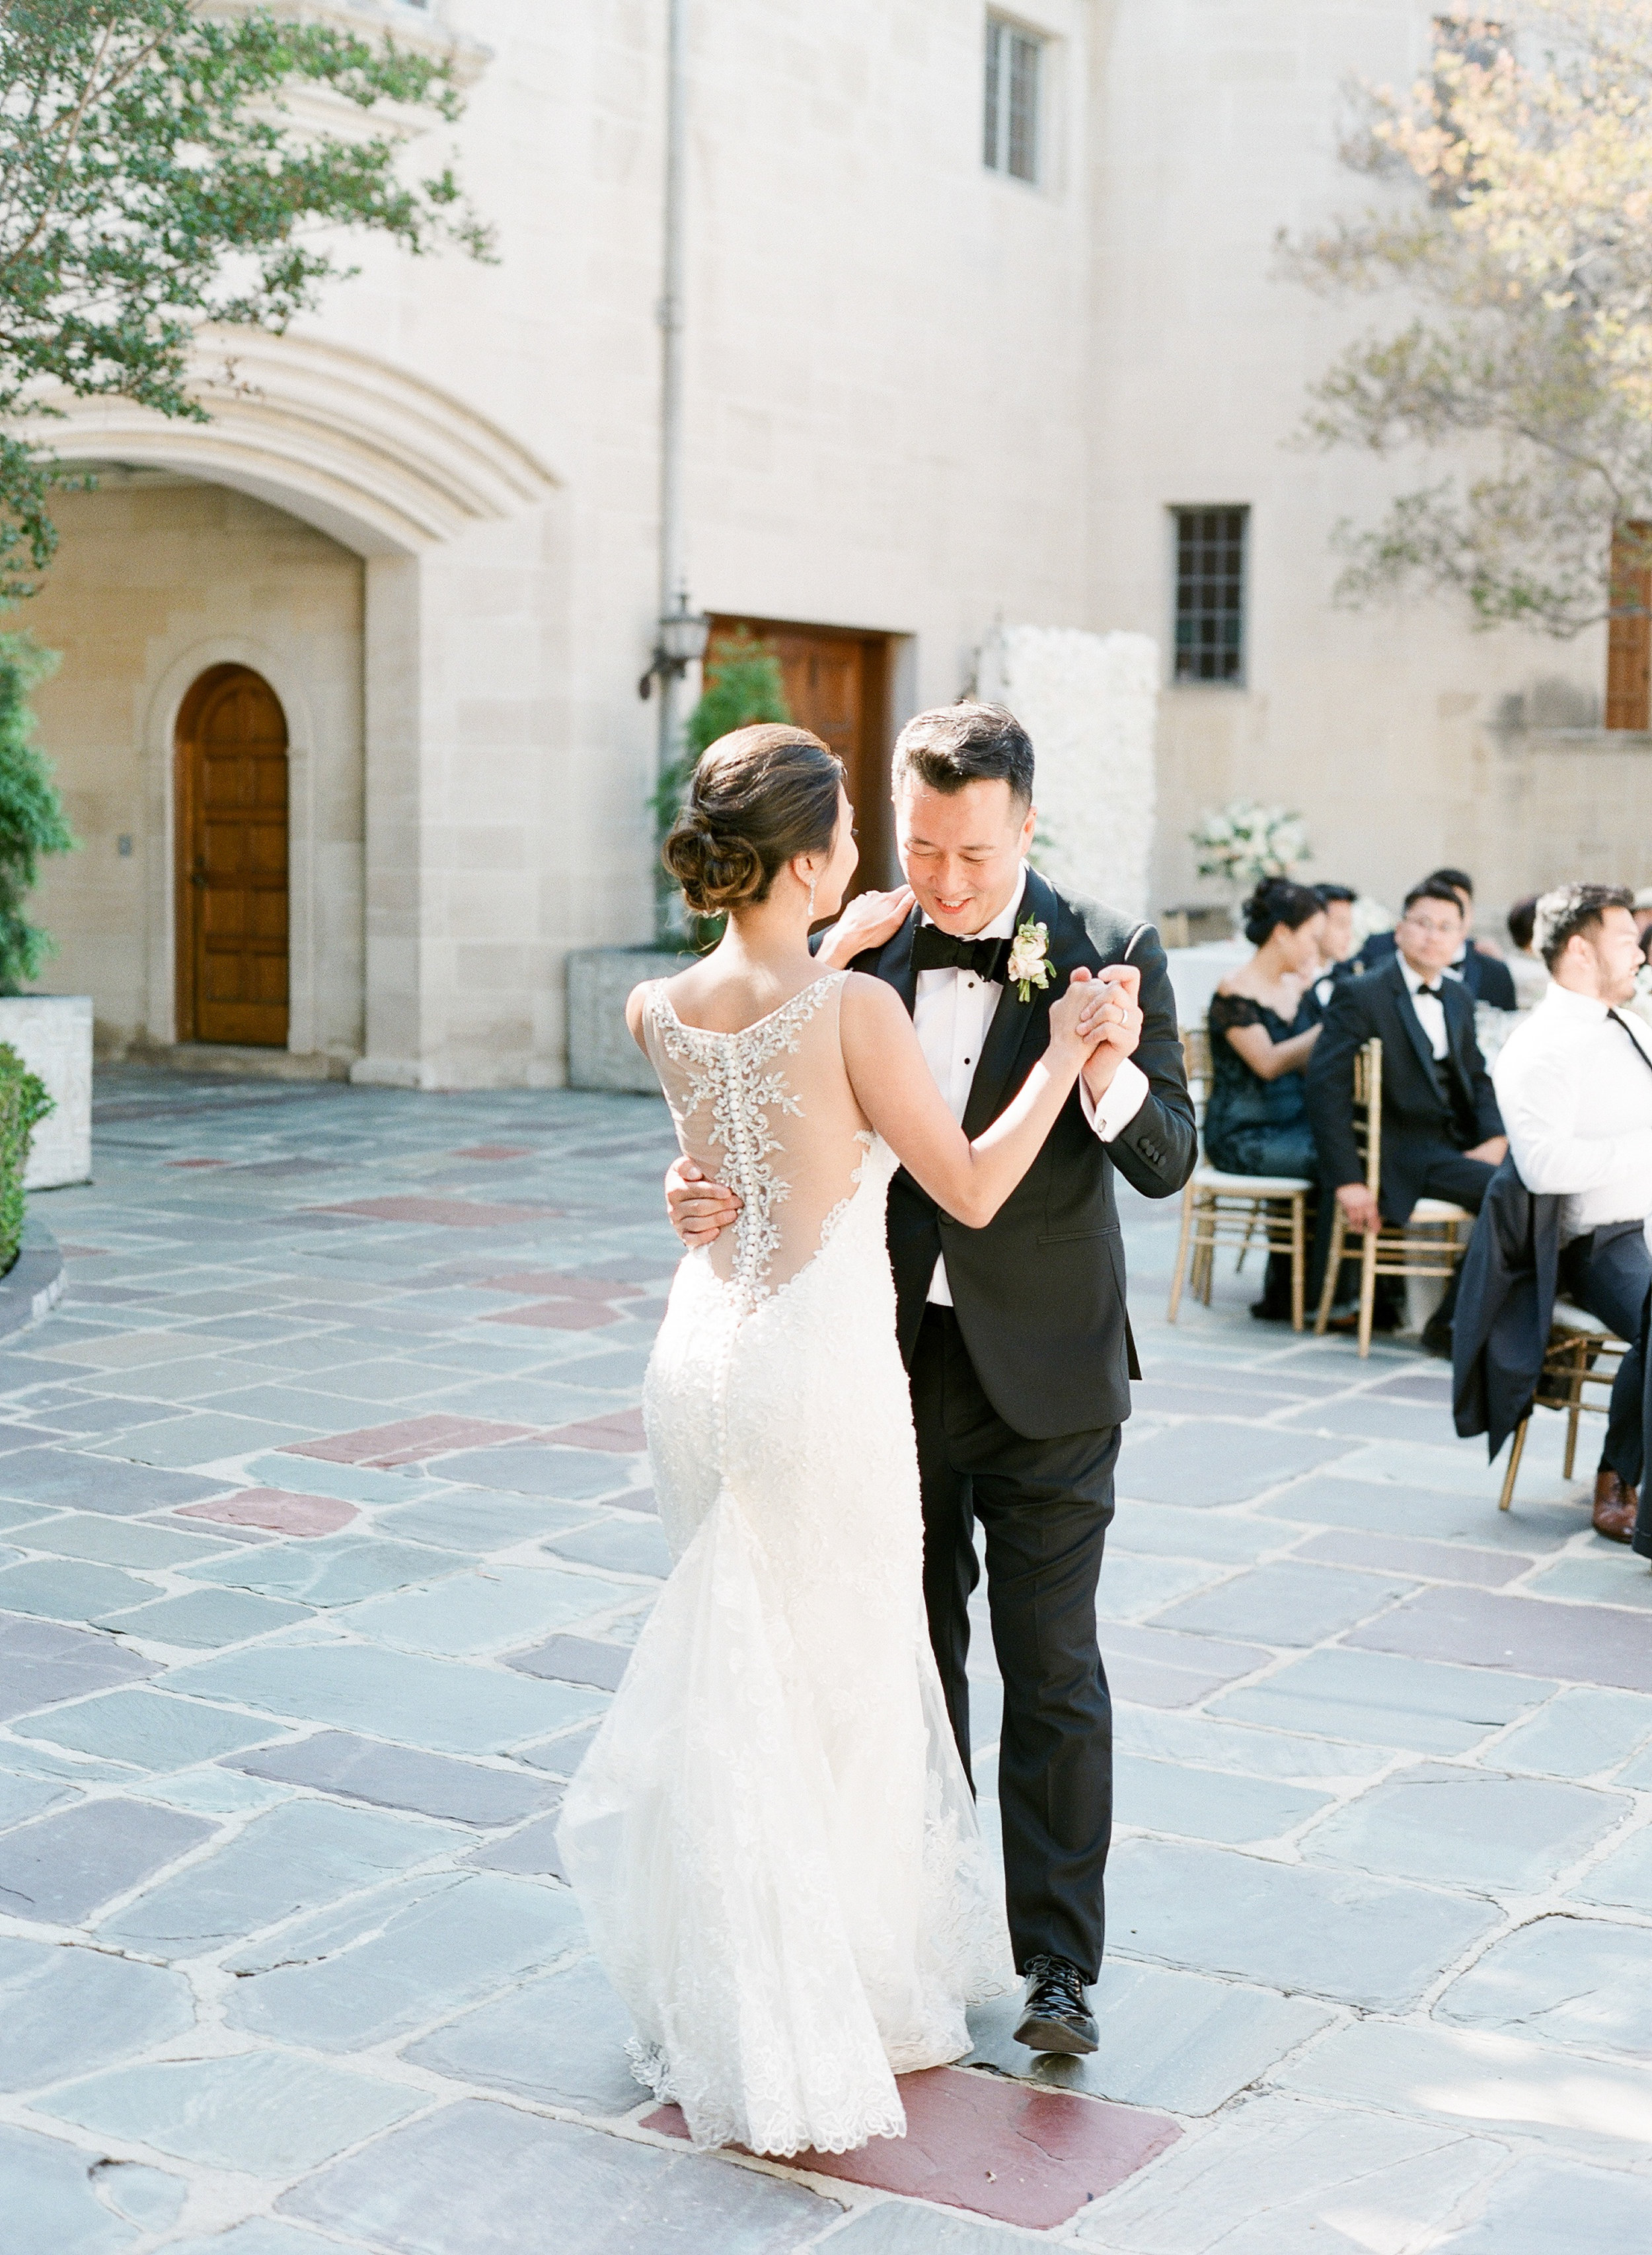 Greystone-Mansion-Wedding-Kristina-Adams-614.jpg